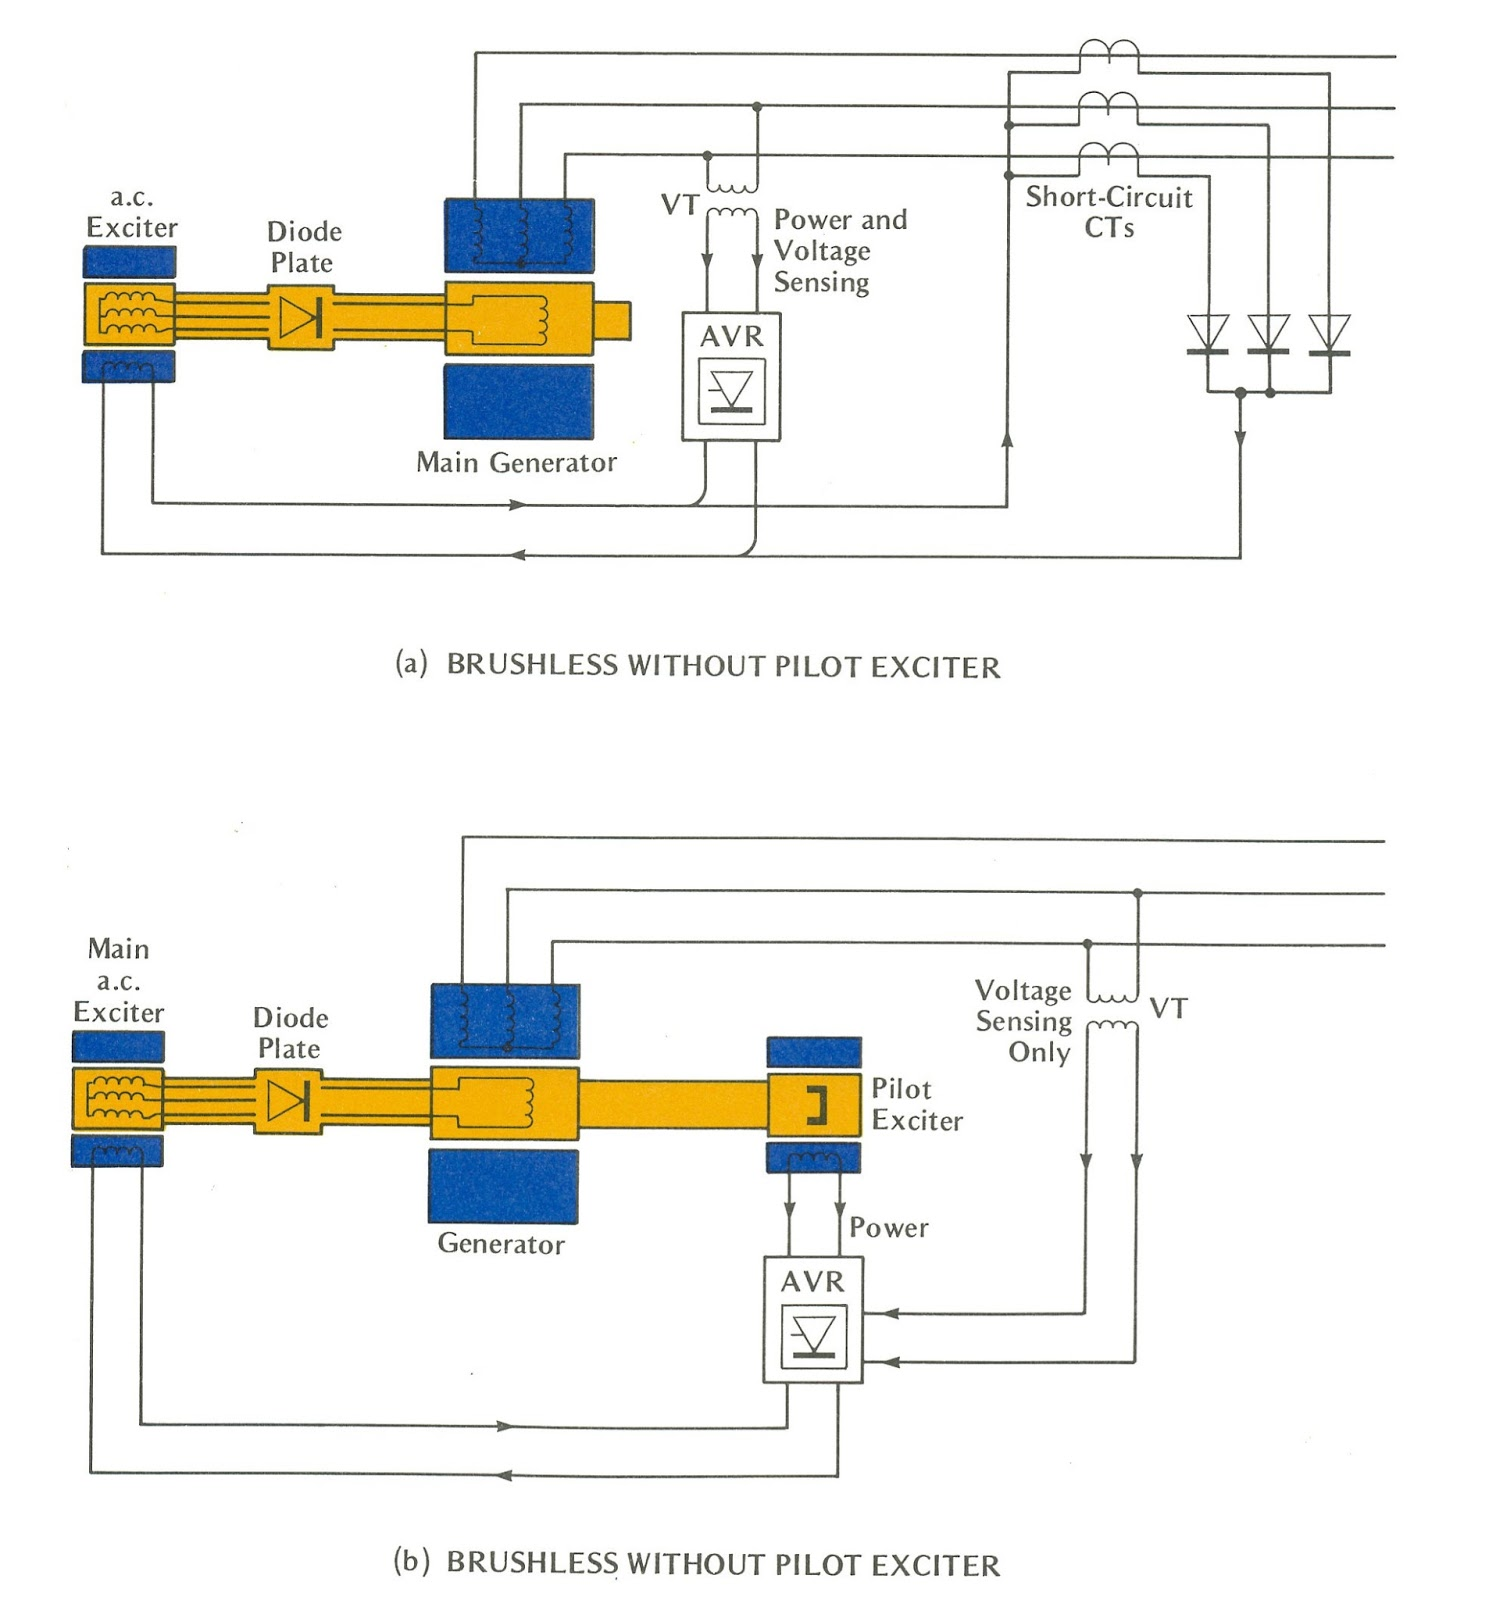 hight resolution of engineering photos videos and articels engineering search engine rh emadrlc blogspot com ac generator wiring diagram